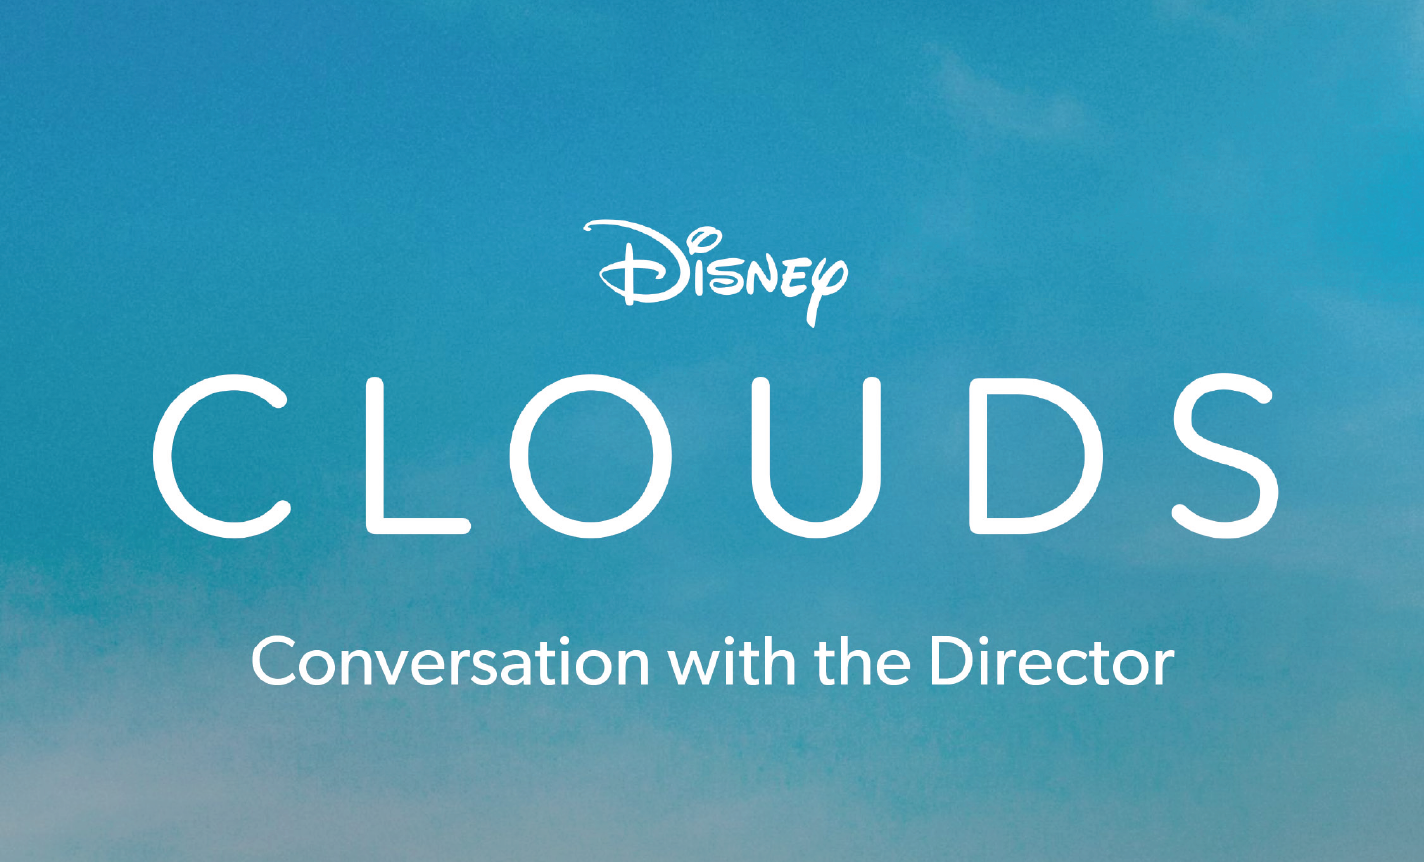 CLOUDS Discussion with Director Justin Baldoni